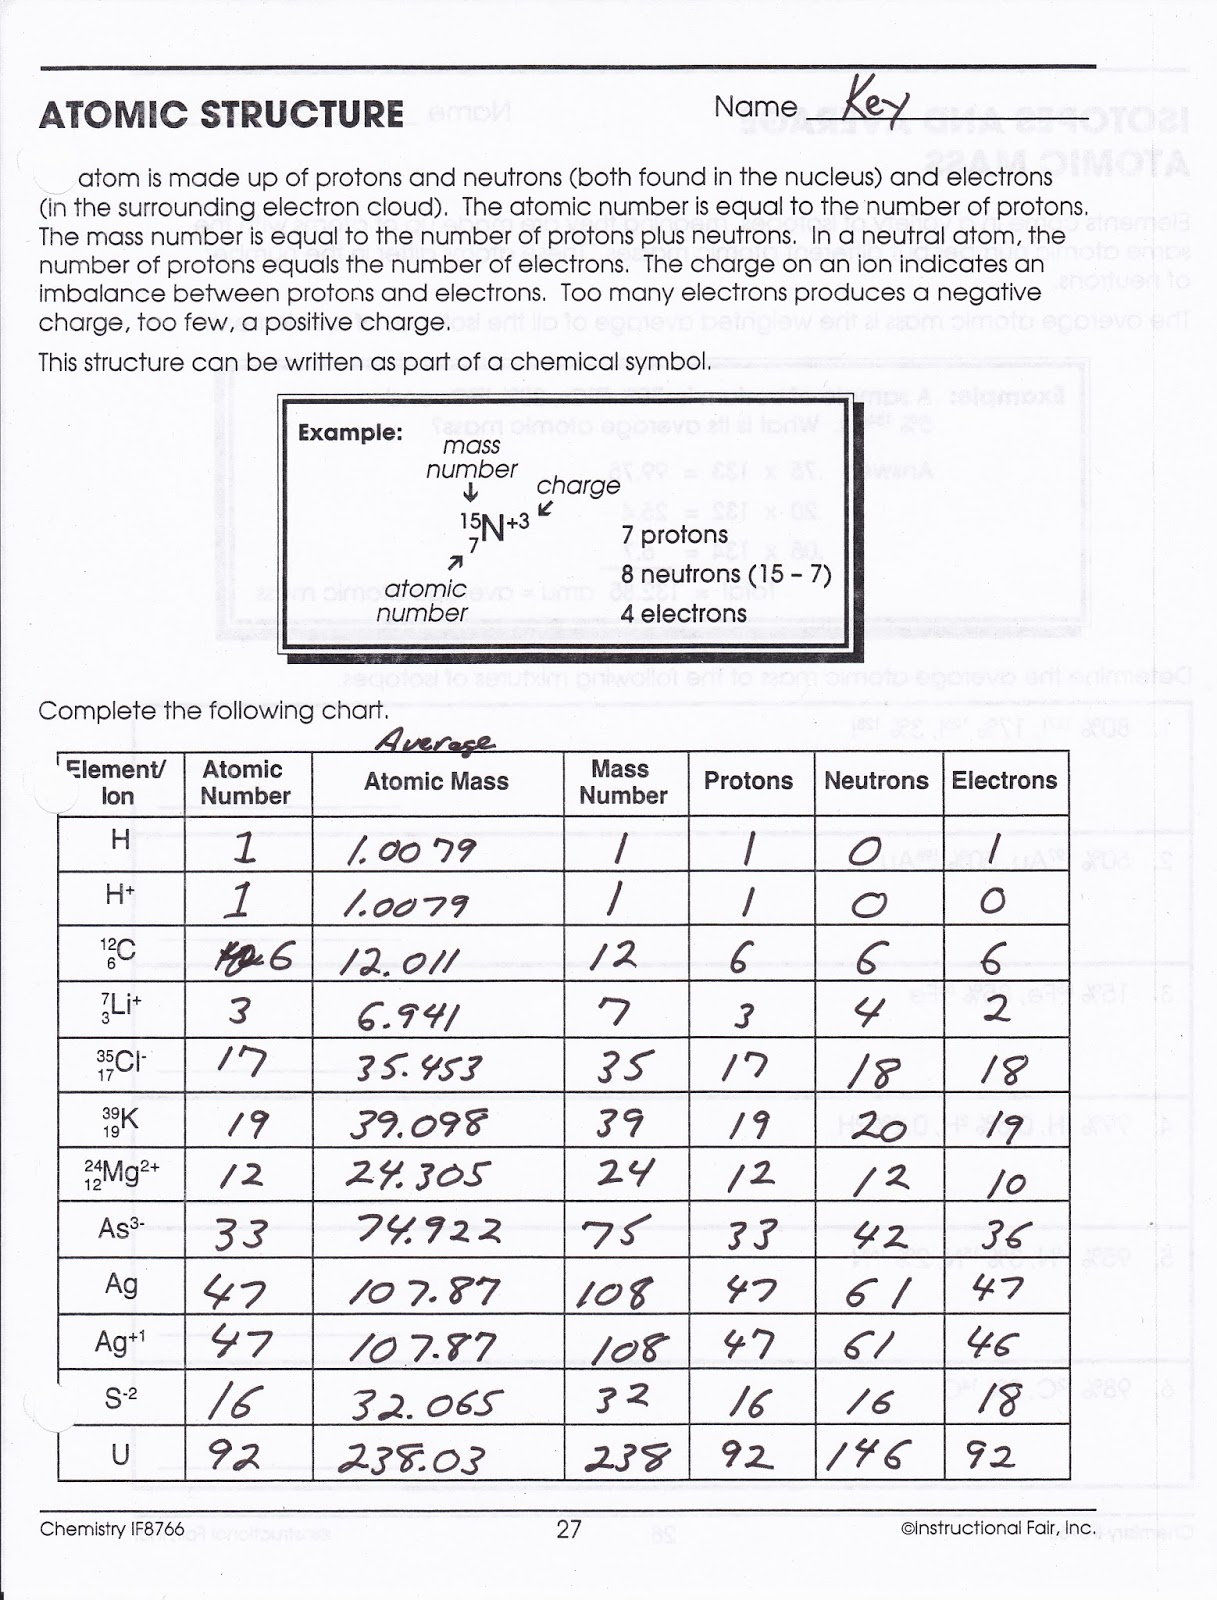 Atomic Structure Chart Worksheet Answer Key - Worksheets